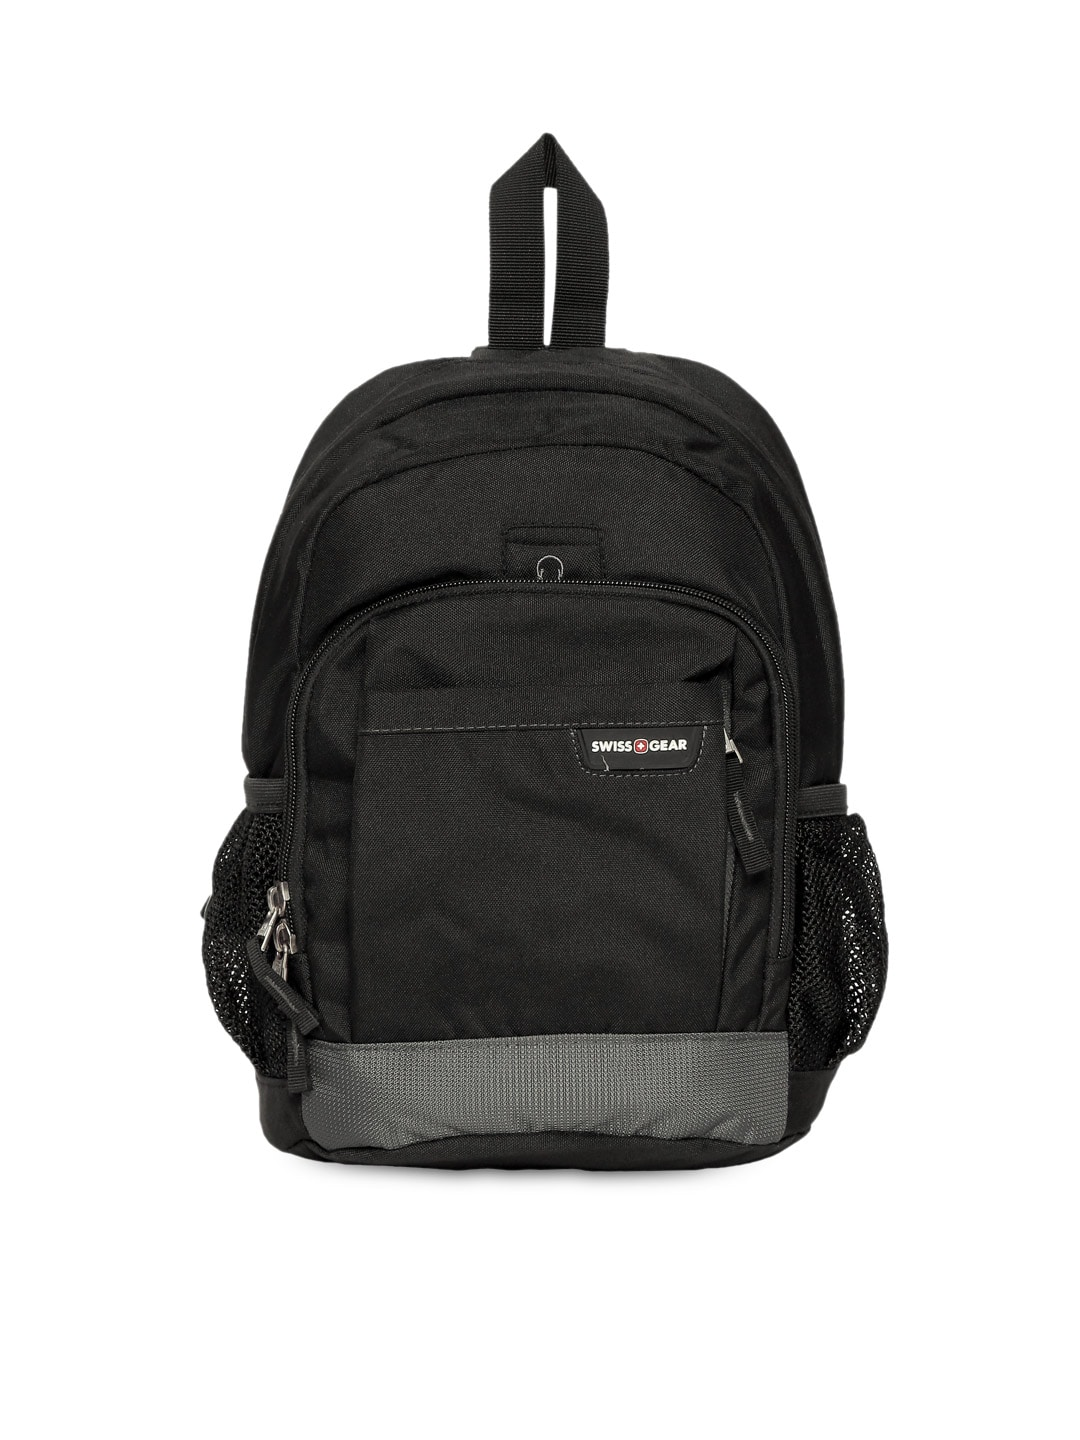 dd77ad084bfe Swiss gear 2310204551 Unisex Black Backpack - Best Price in India ...